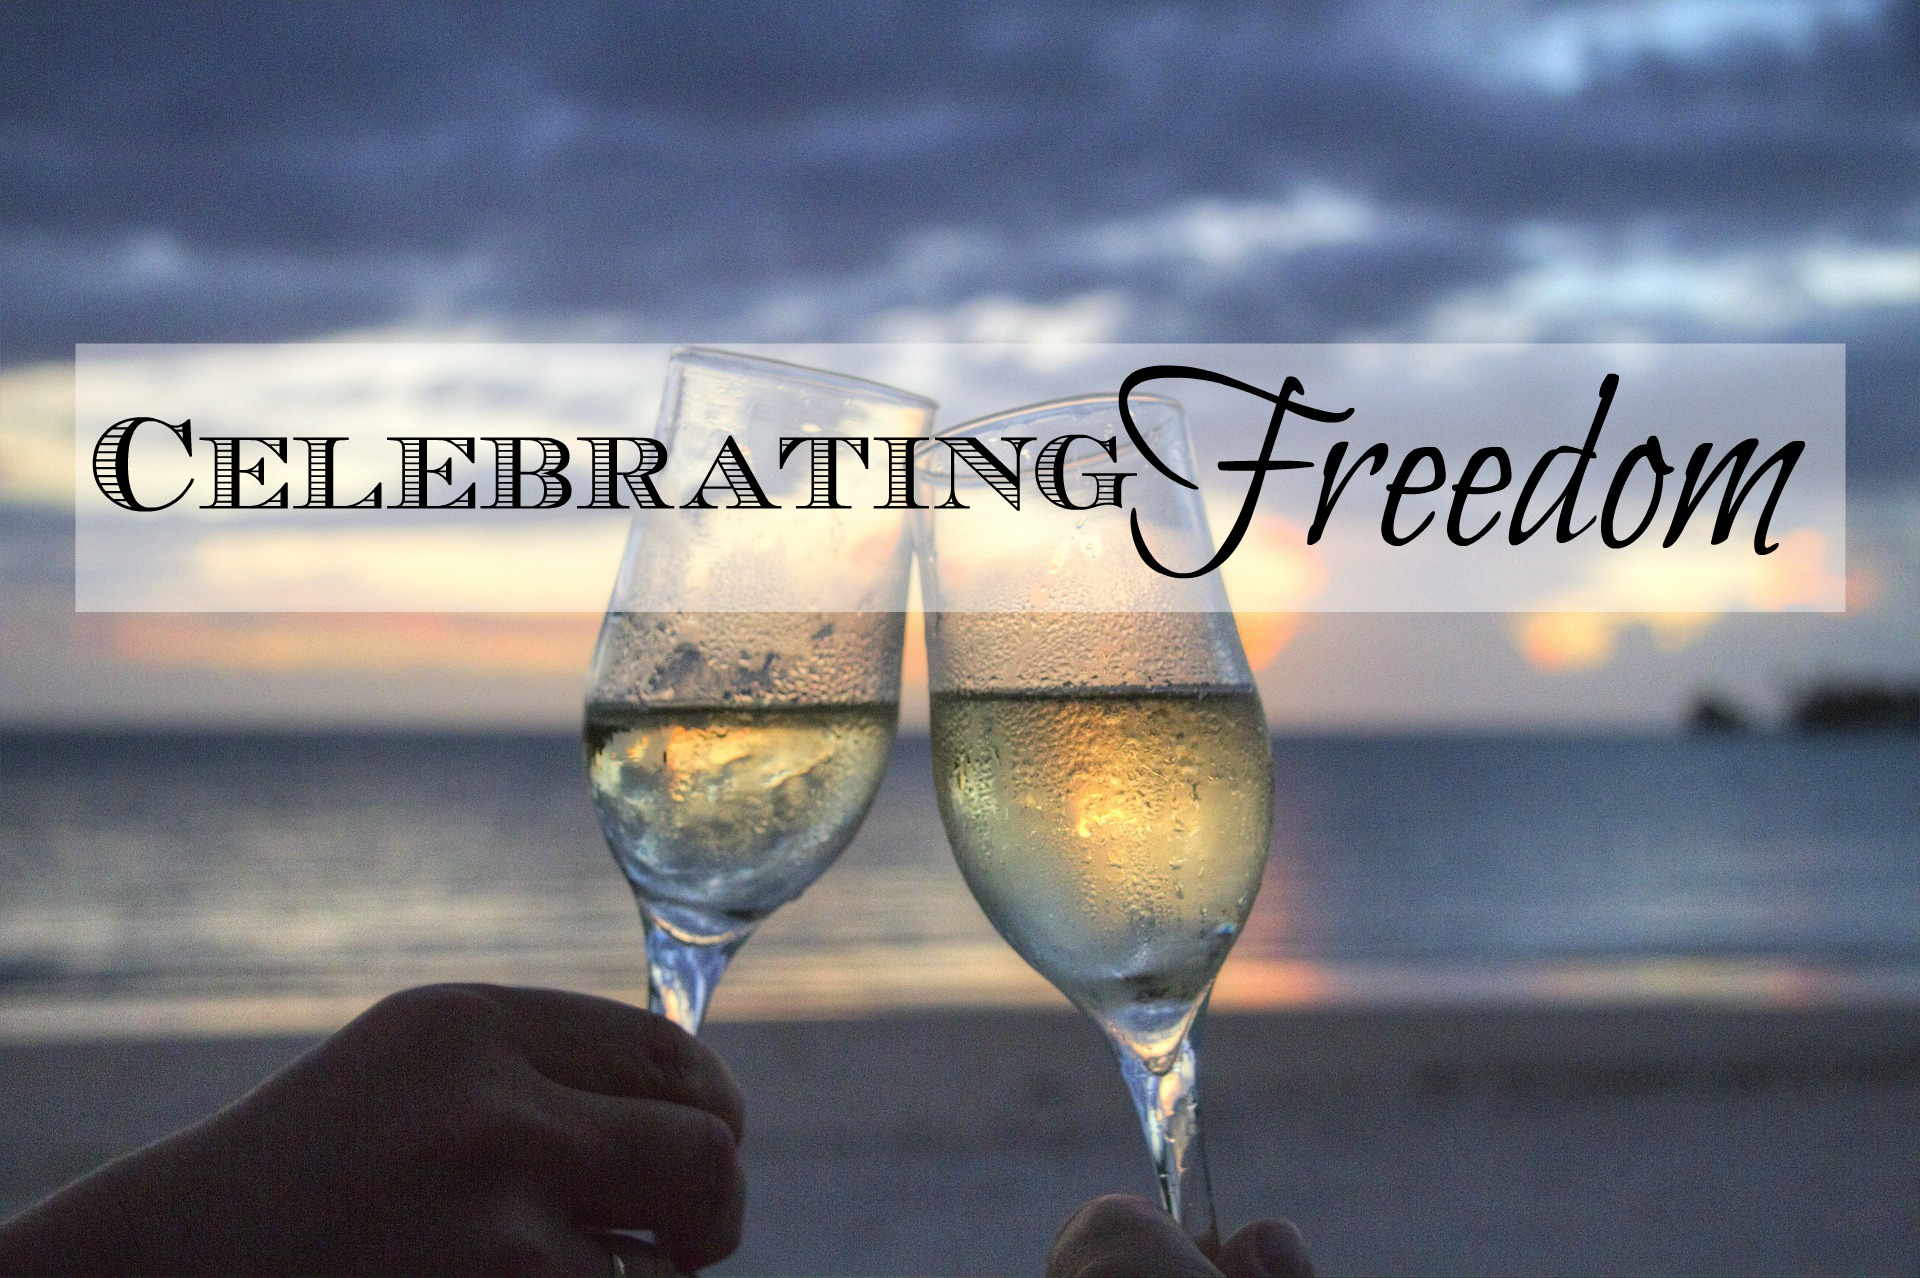 Celebrating Freedom - Day 10 of the Freedom Plan Blog Challenge as we look back on what have been the things learnt and gained from the challenge. #10DBC #freedomplan